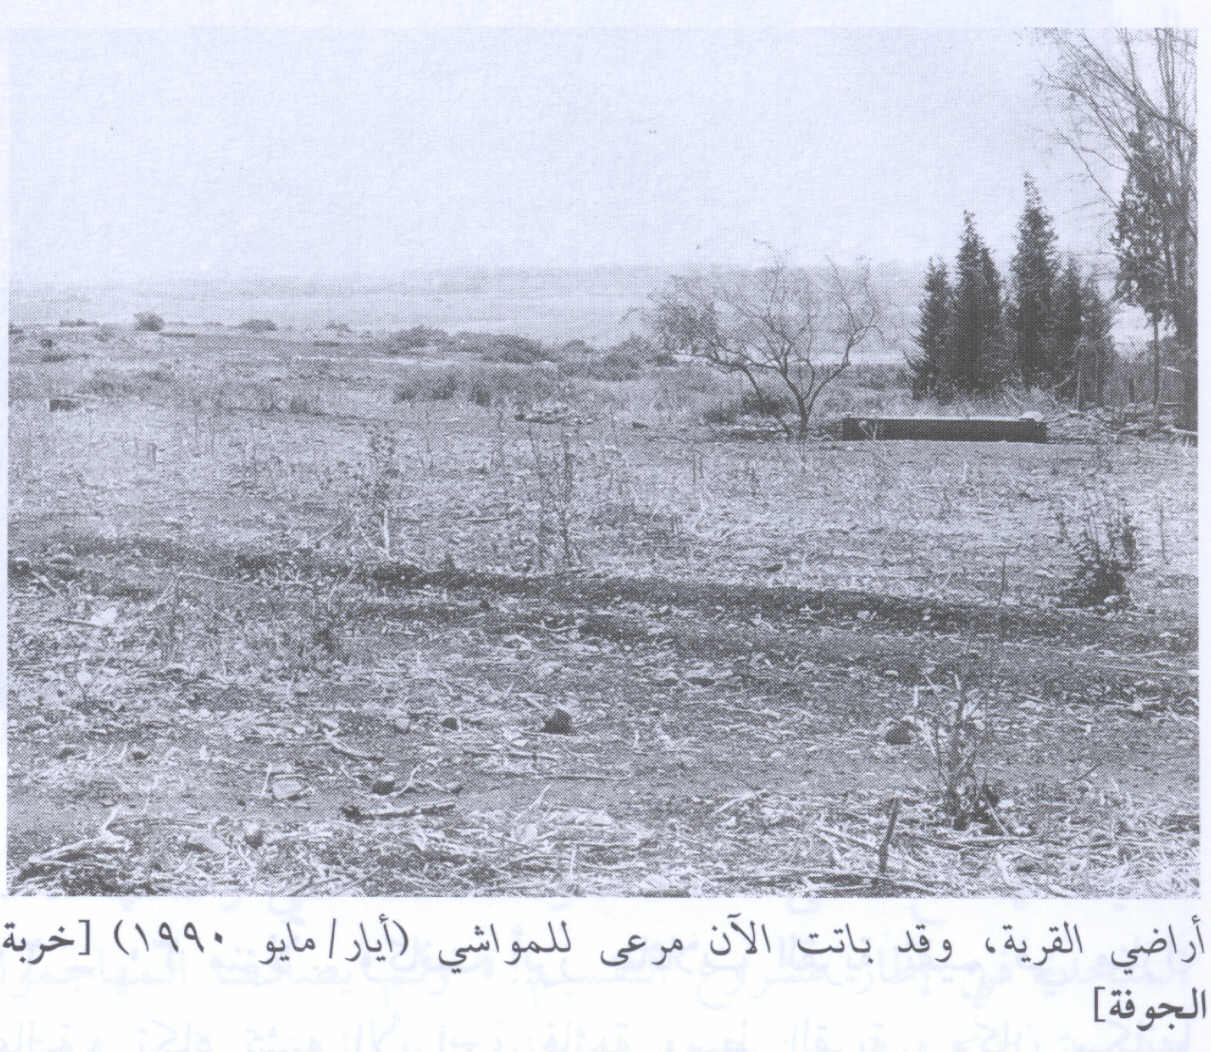 al-Jawfa, Khirbat - خربة الجوْفة : Village lands now us as pasture by Jewish settlers, 1990